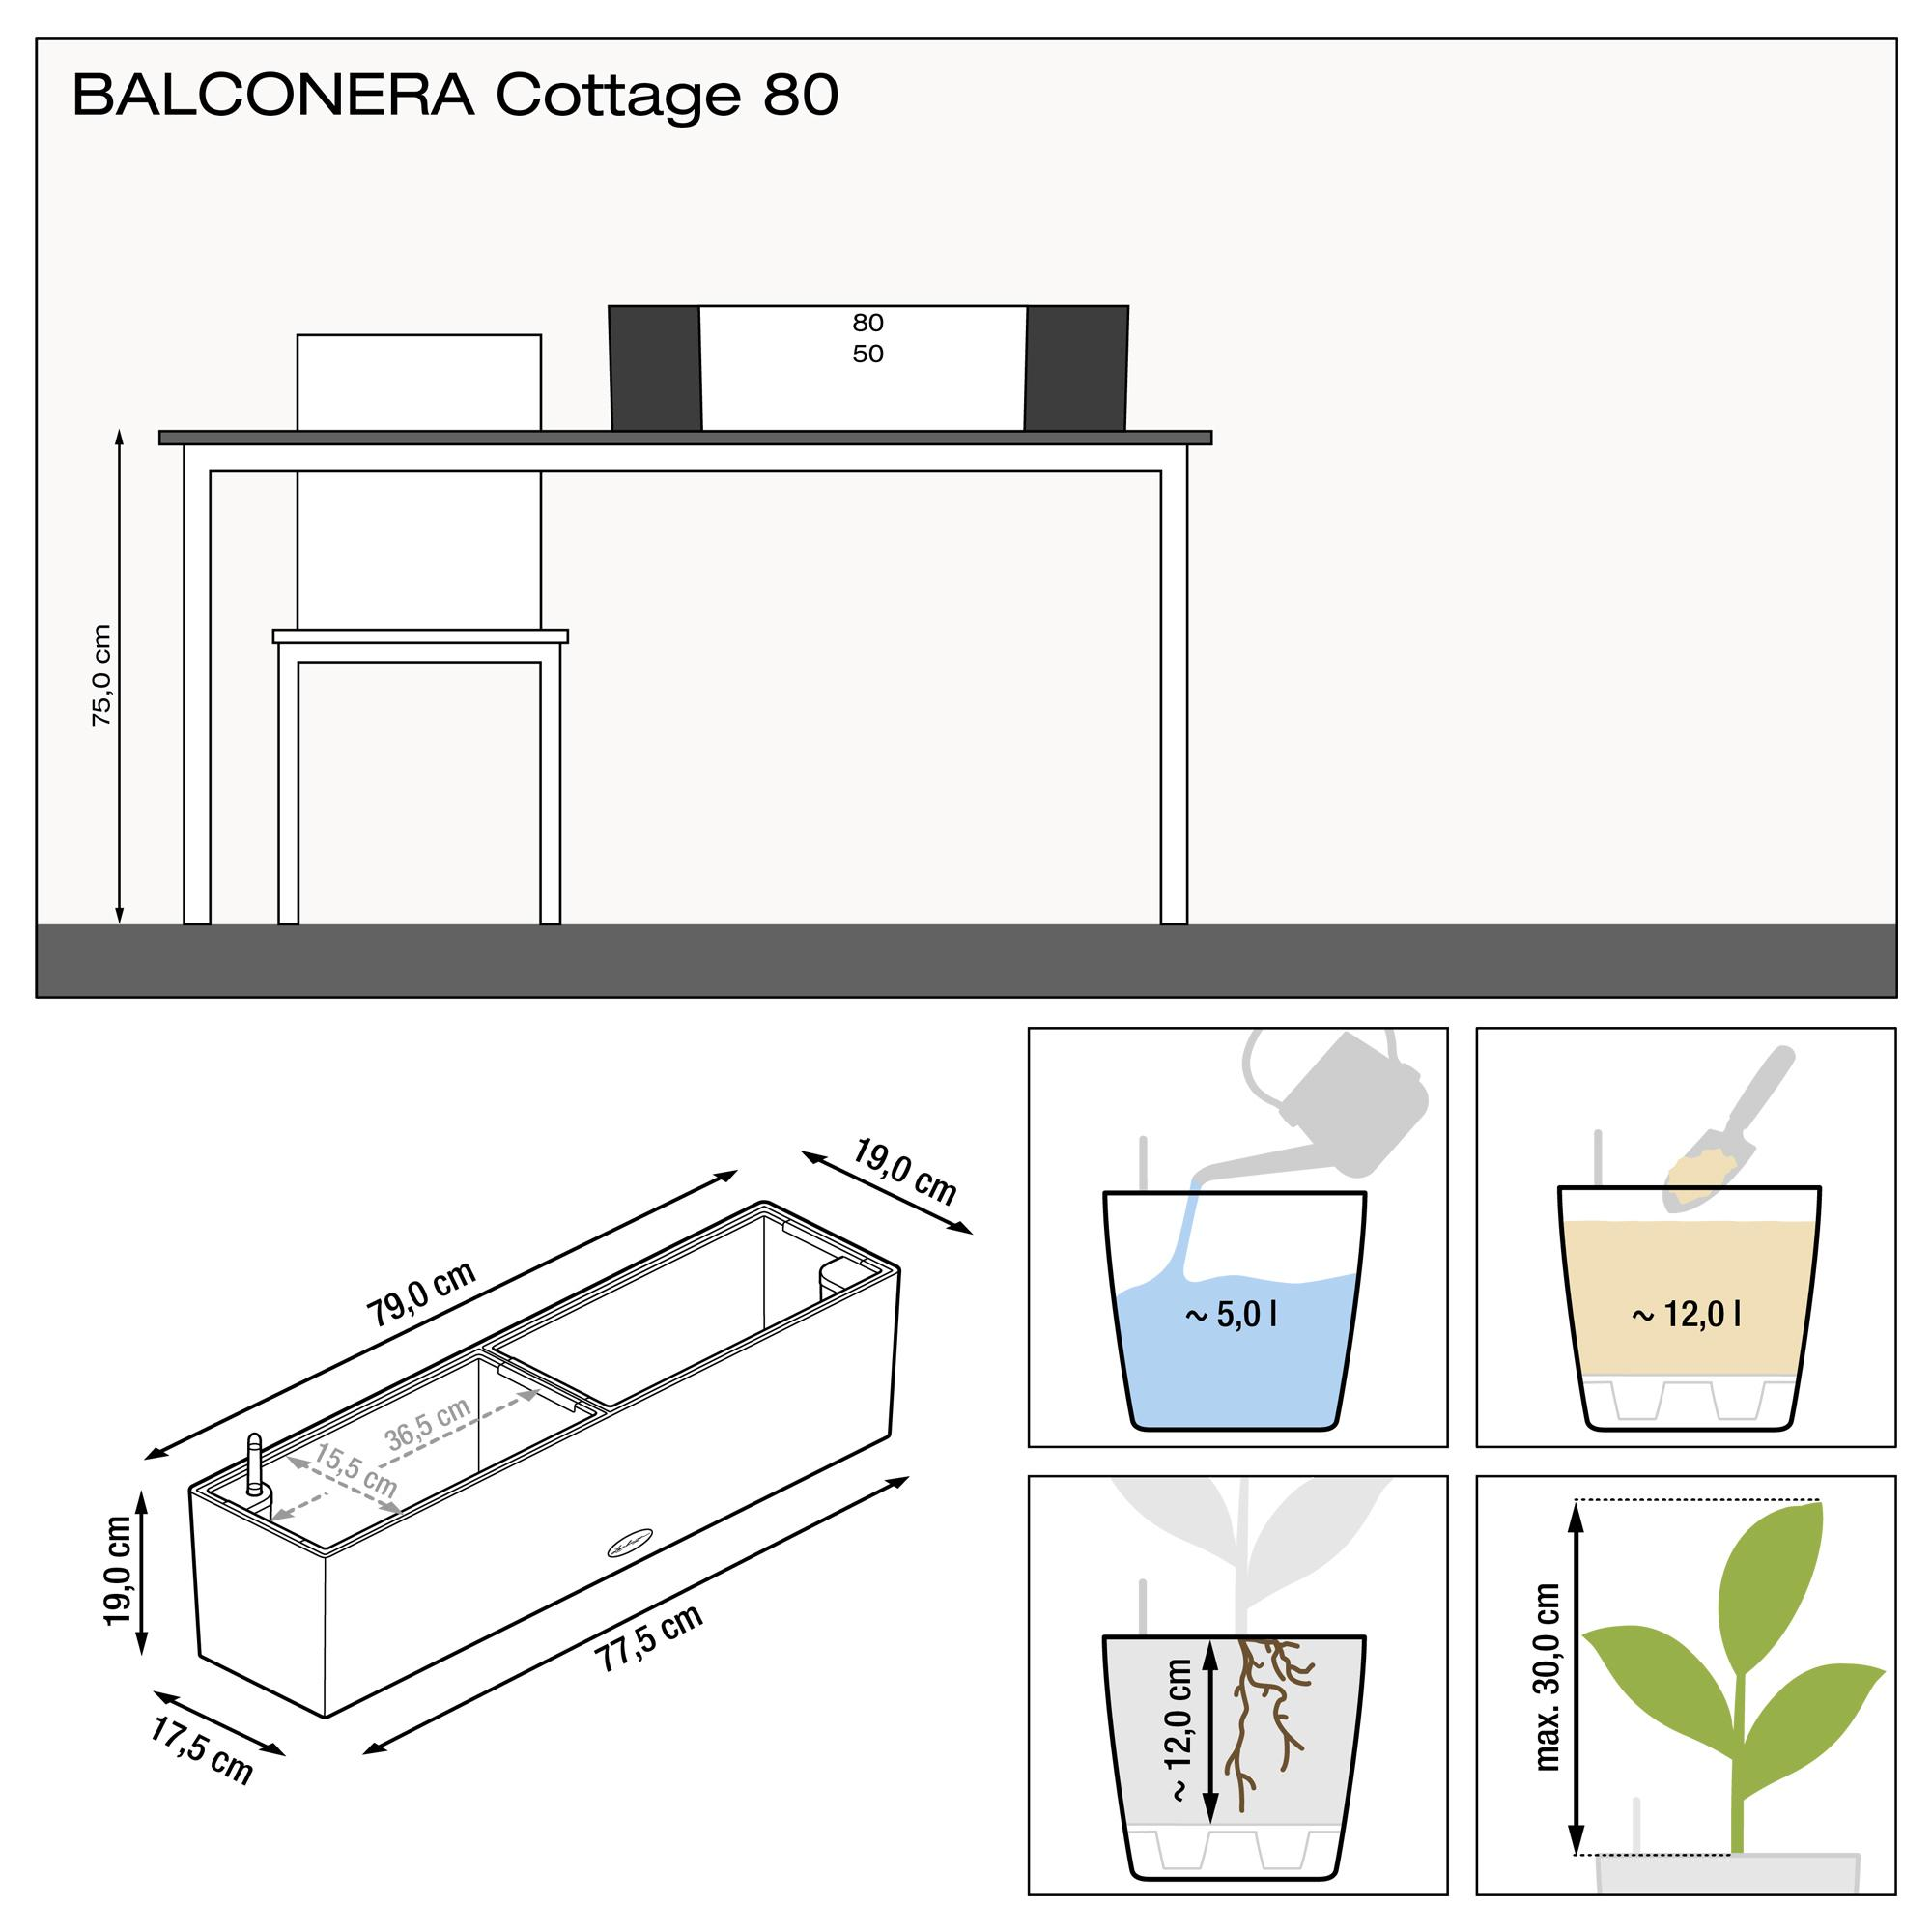 le_balconera-cottage80_product_addi_nz